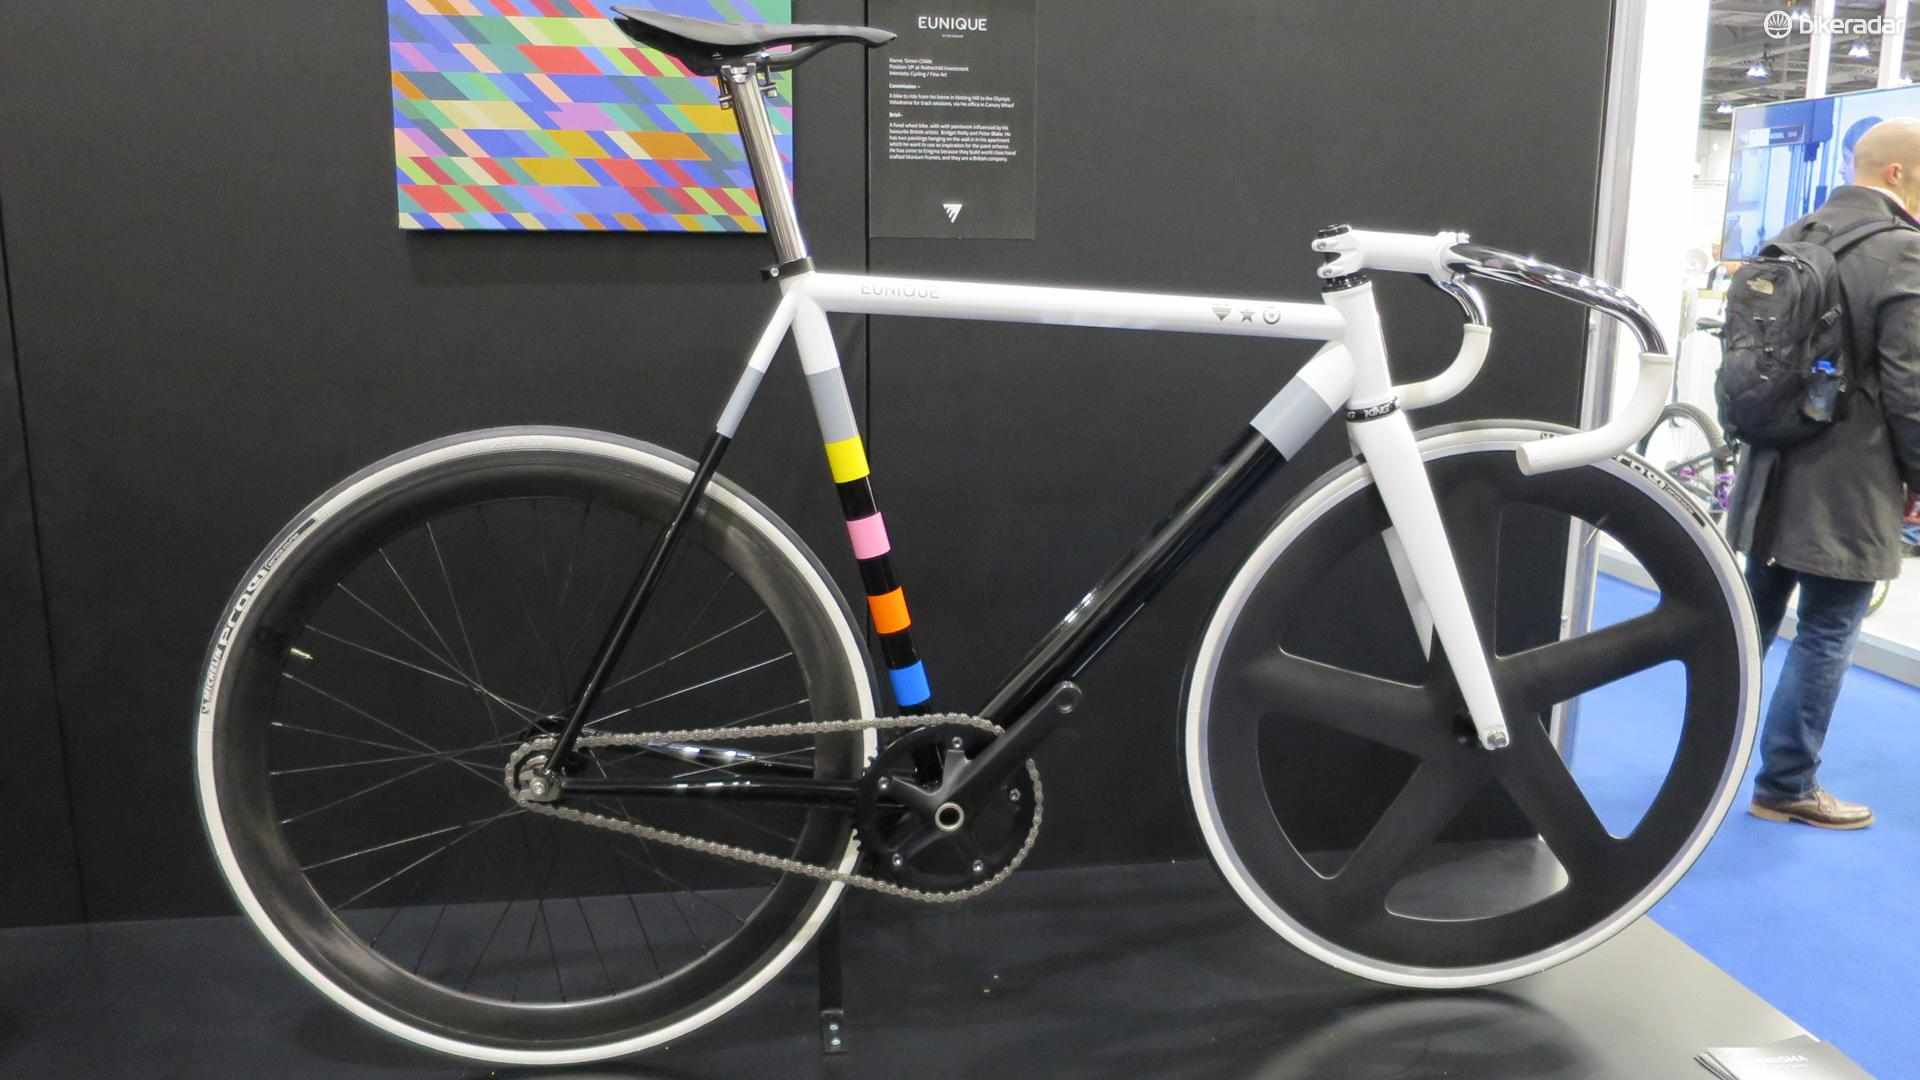 This Eunique track bike is inspired by British artists Bridget Riley and Peter Blake